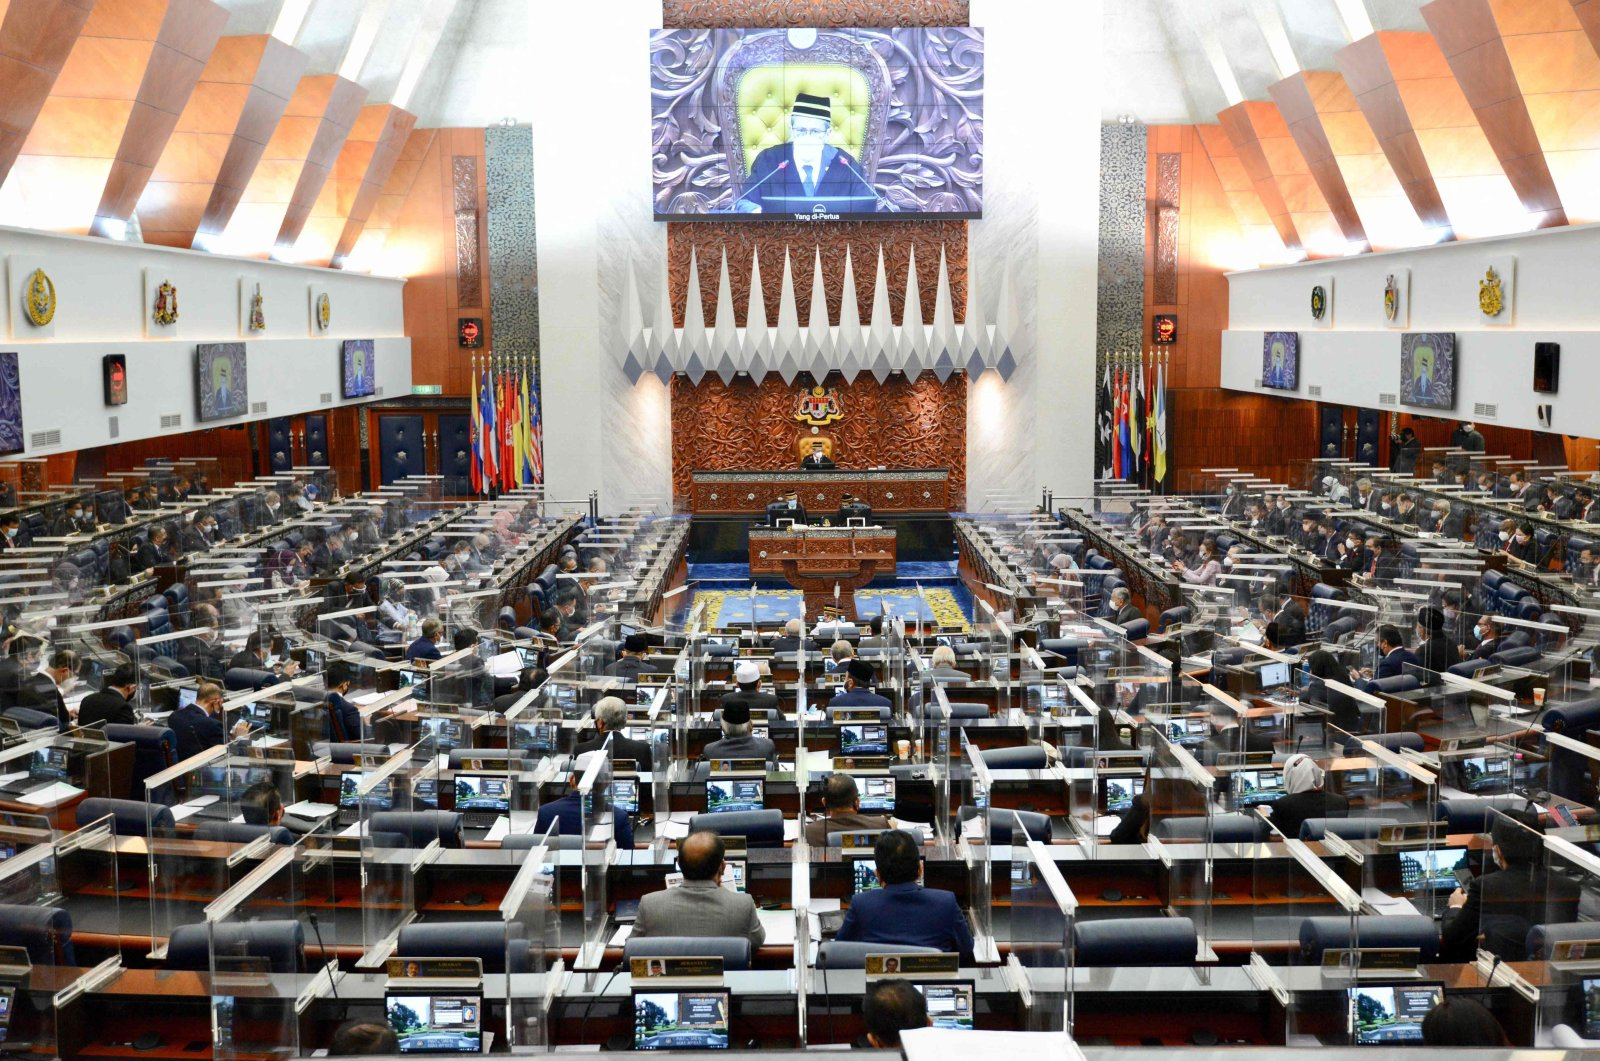 A special session of the Dewan Rakyat (House of Representatives) at the Parliament in Kuala Lumpur, convening for the first time since January after being suspended under a coronavirus emergency, July 26, 2021. (Photo by Nazri RAPAAI / Malaysia's Department of Information / AFP)